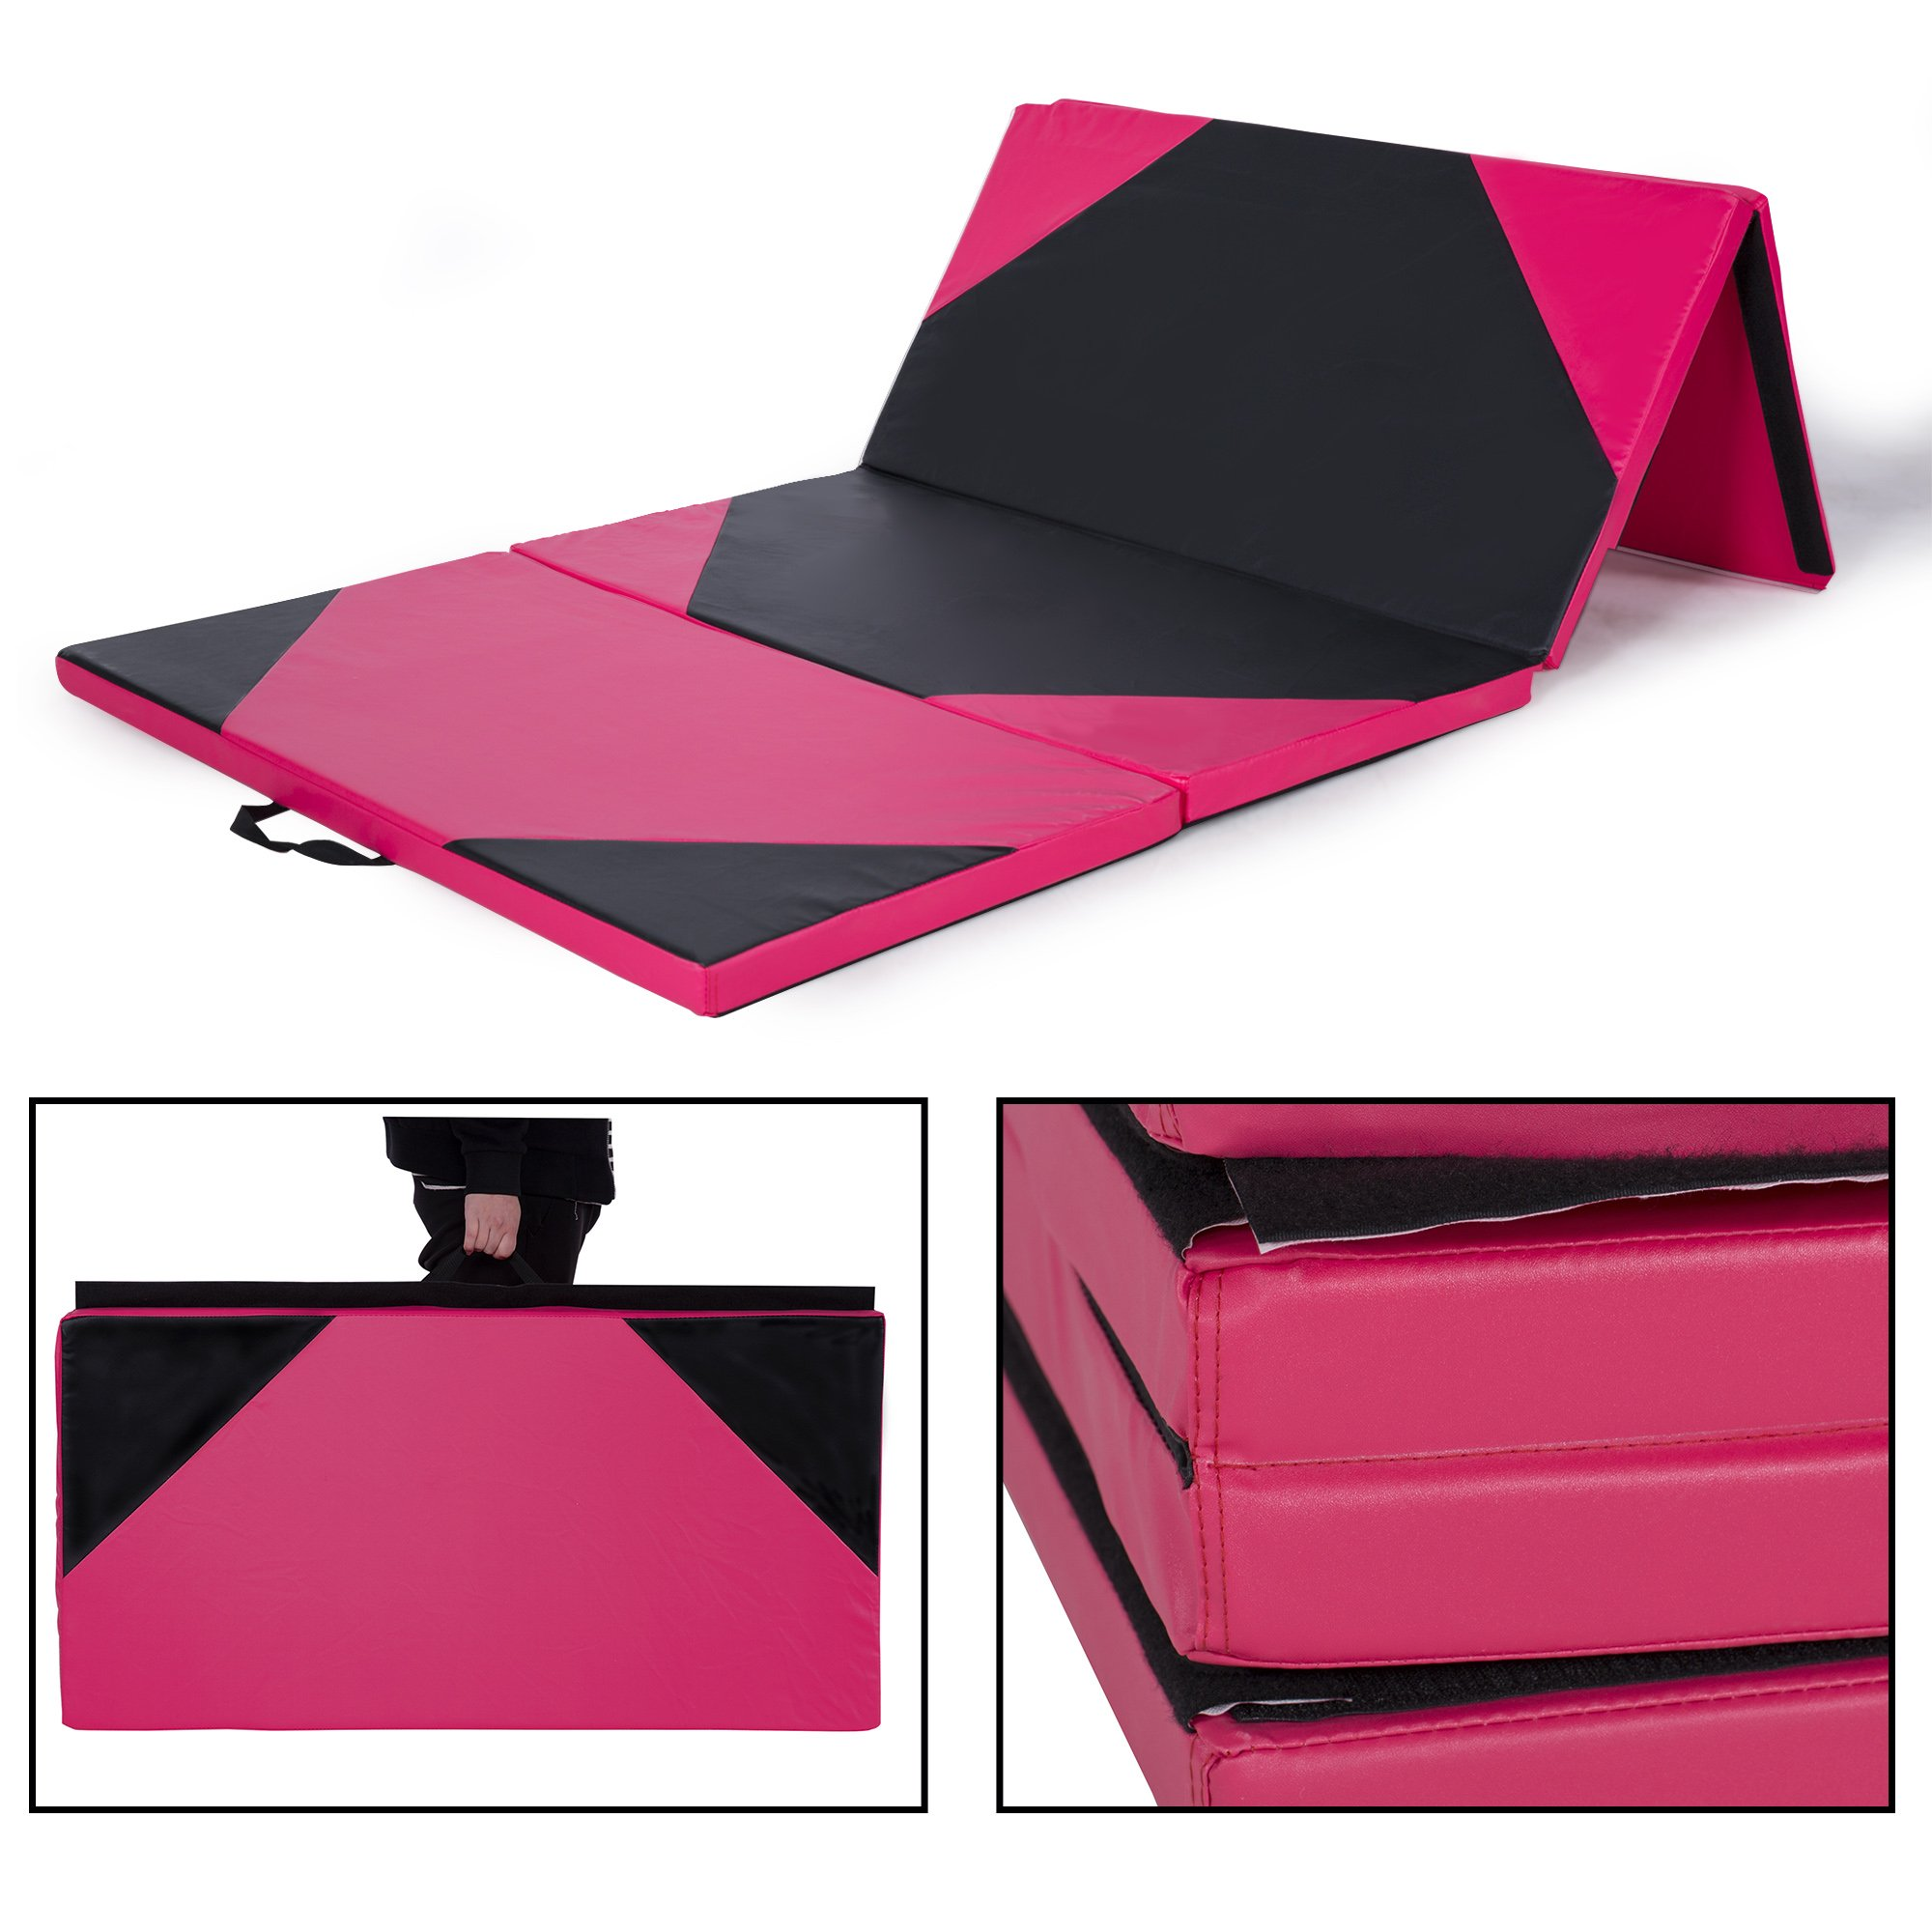 Sportmad 4'x10'x2 Thick Folding Panel Gymnastics Tumbling Mat Gym, Fitness, Exercise (Black/Pink) by Sportmad (Image #2)